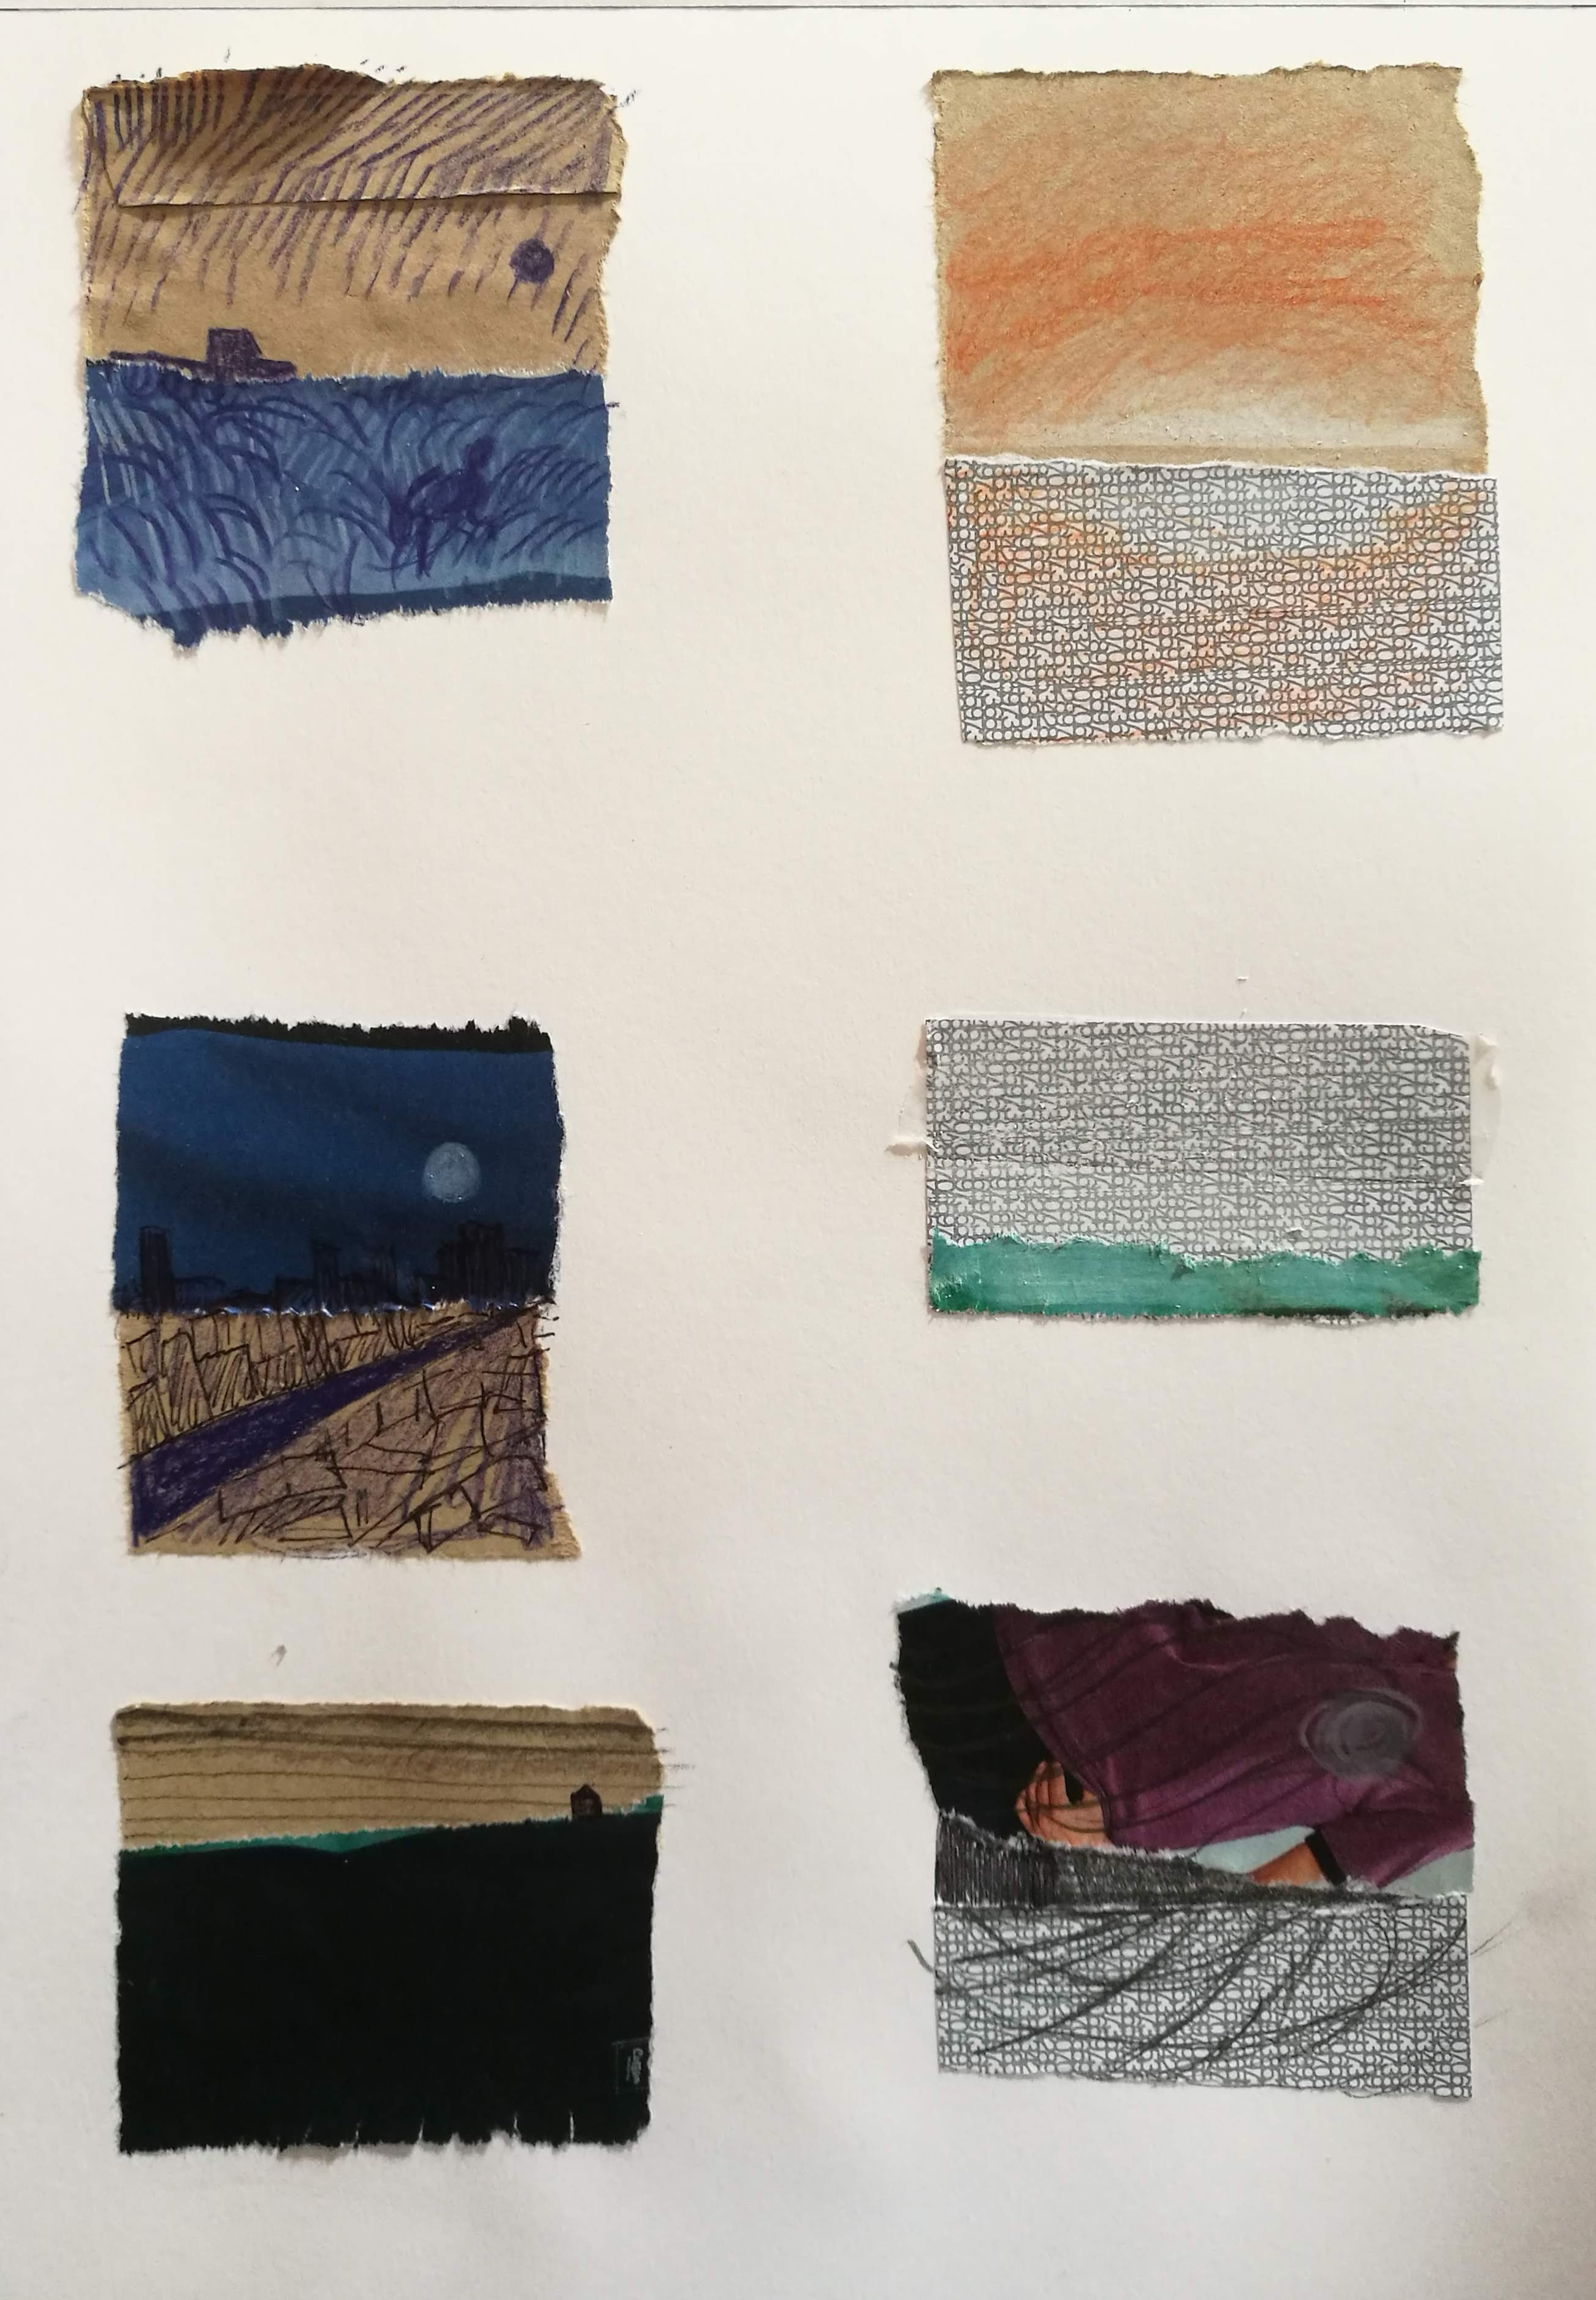 Following Lesson 1 in 'Drawing and Painting The Landscape' - mini collaged landscapes made by me. I worked into these using biro, coloured pencil and graphite. Not masterpieces but little kernels of ideas for possible future paintings.